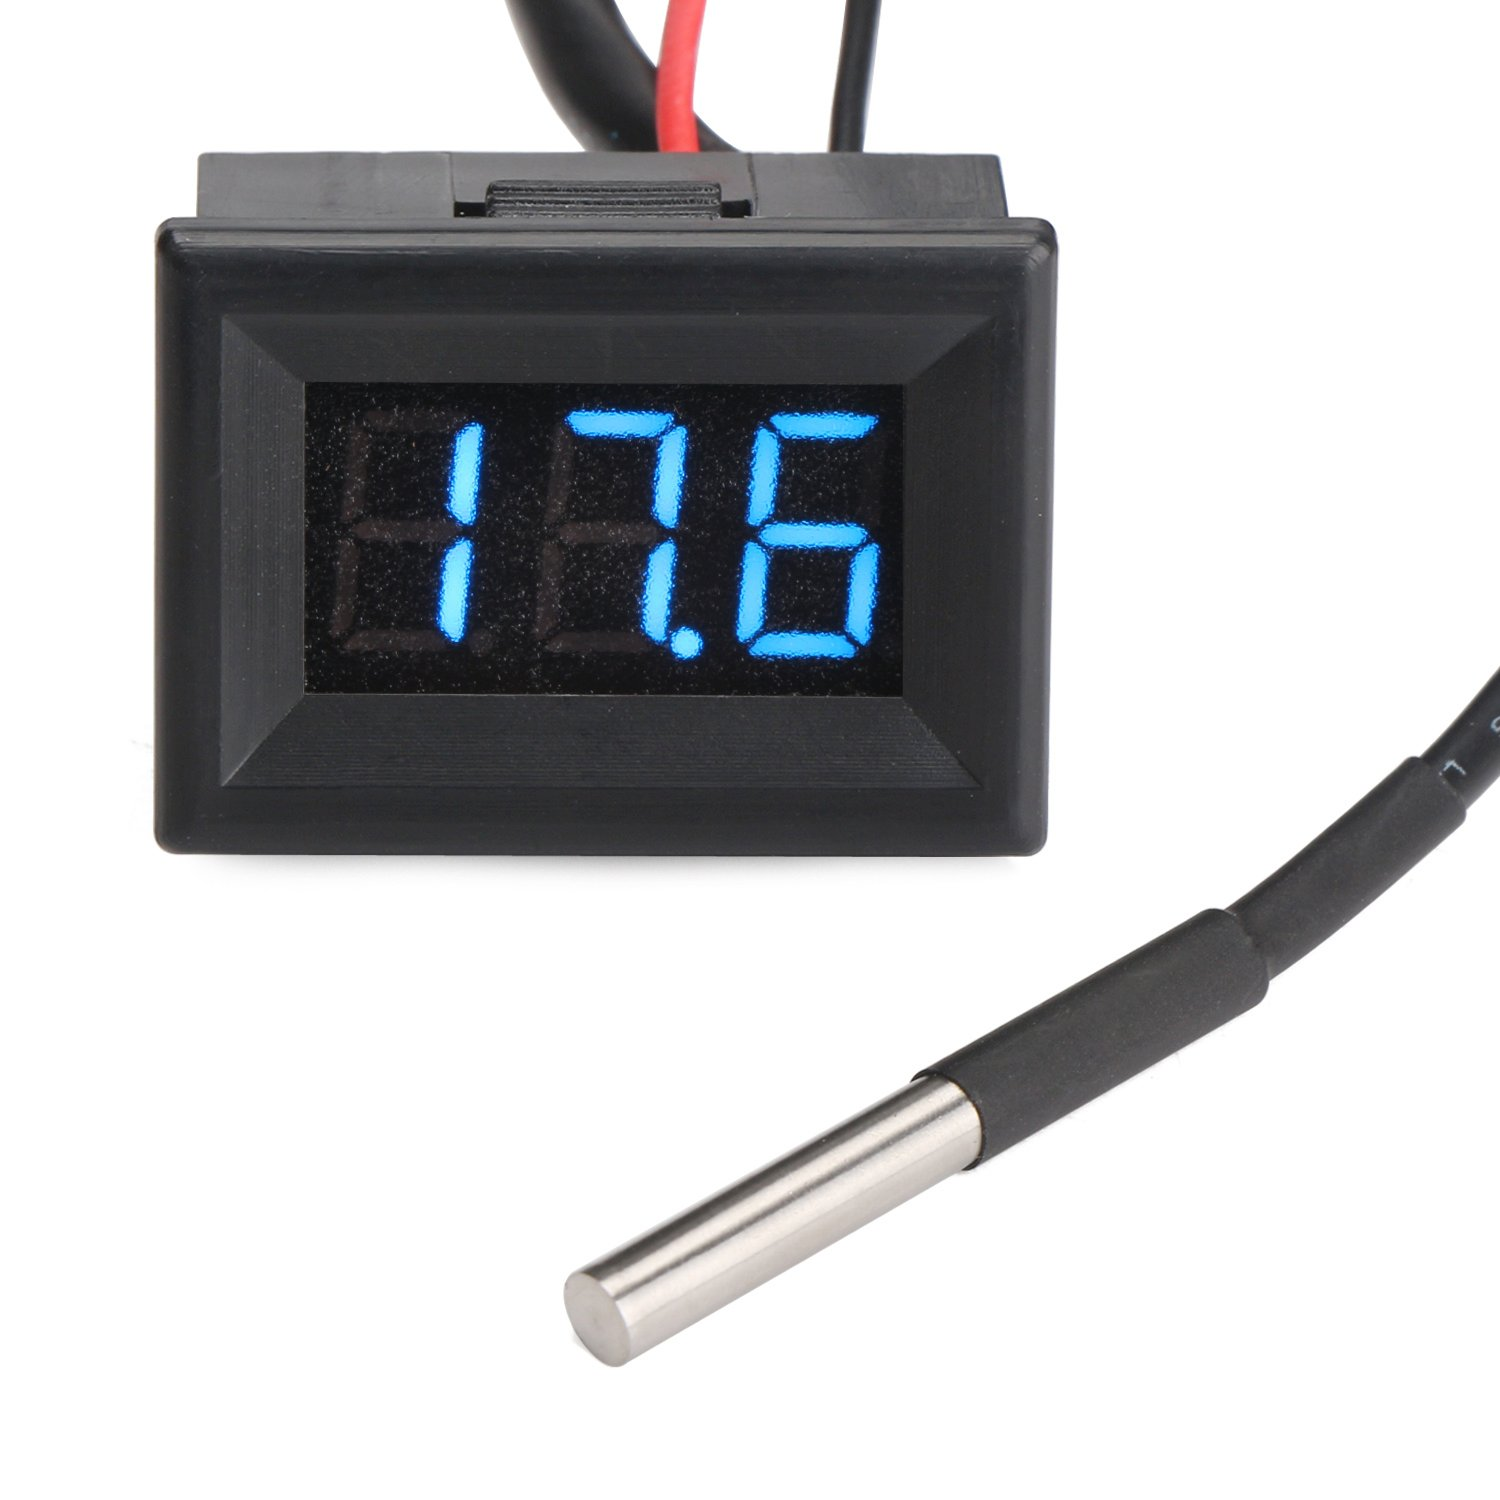 drok digital thermometer electronic temperature monitor with long probe sensor ebay. Black Bedroom Furniture Sets. Home Design Ideas